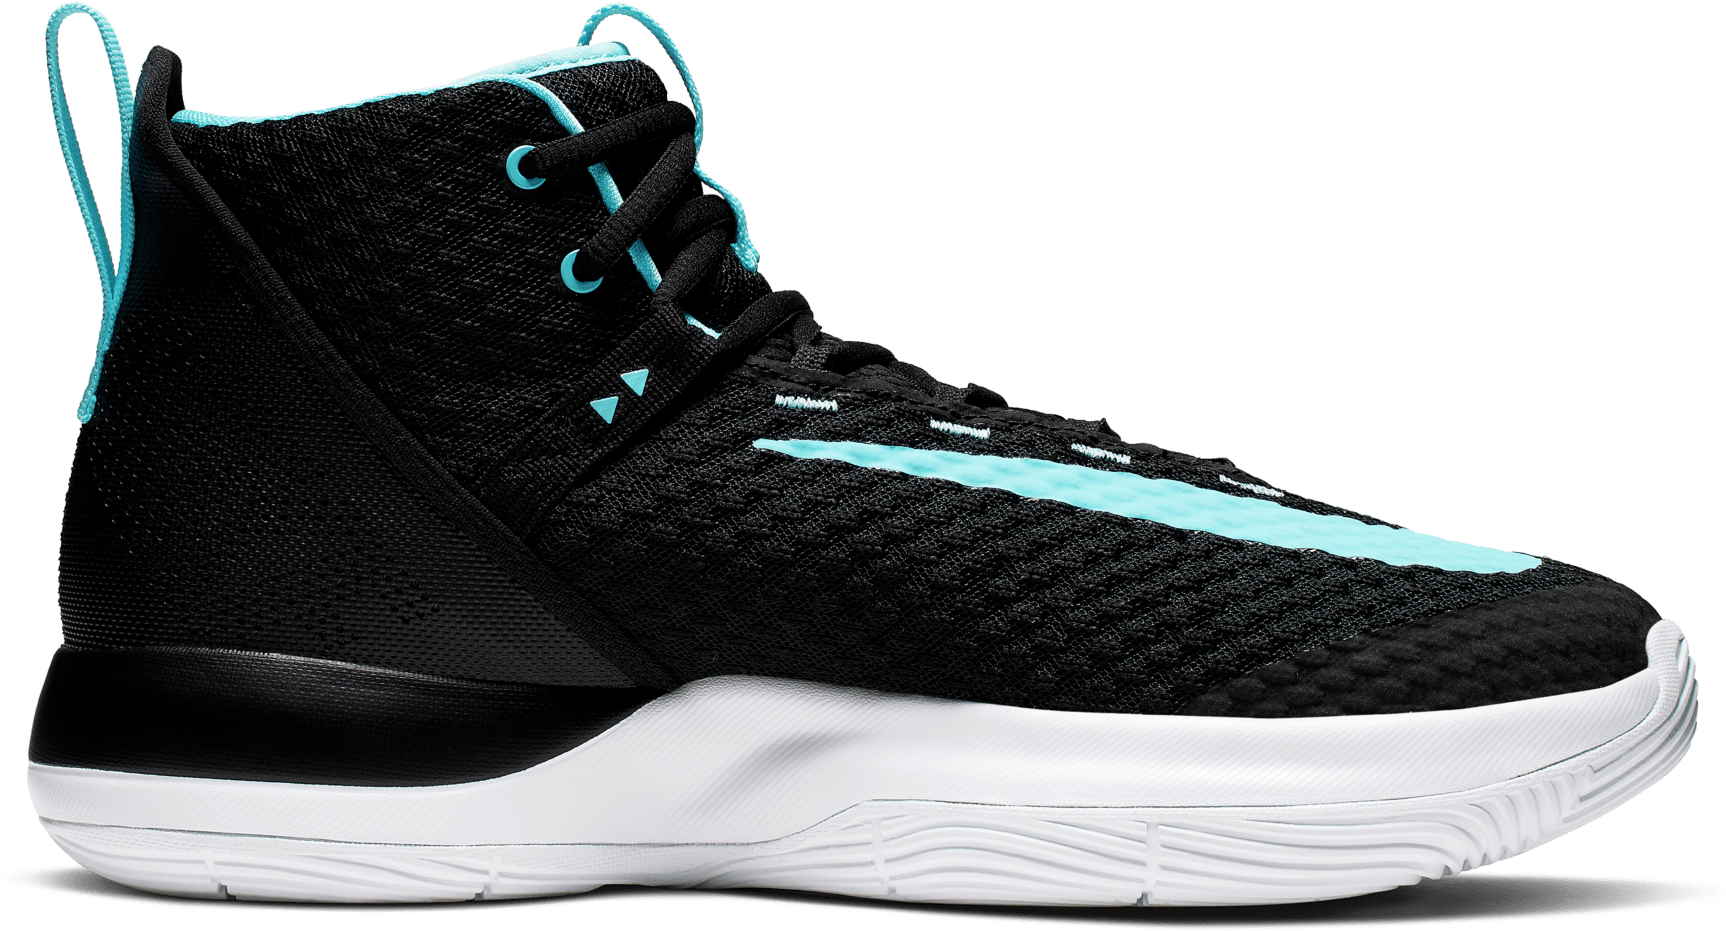 The 20 Best Basketball Shoes in